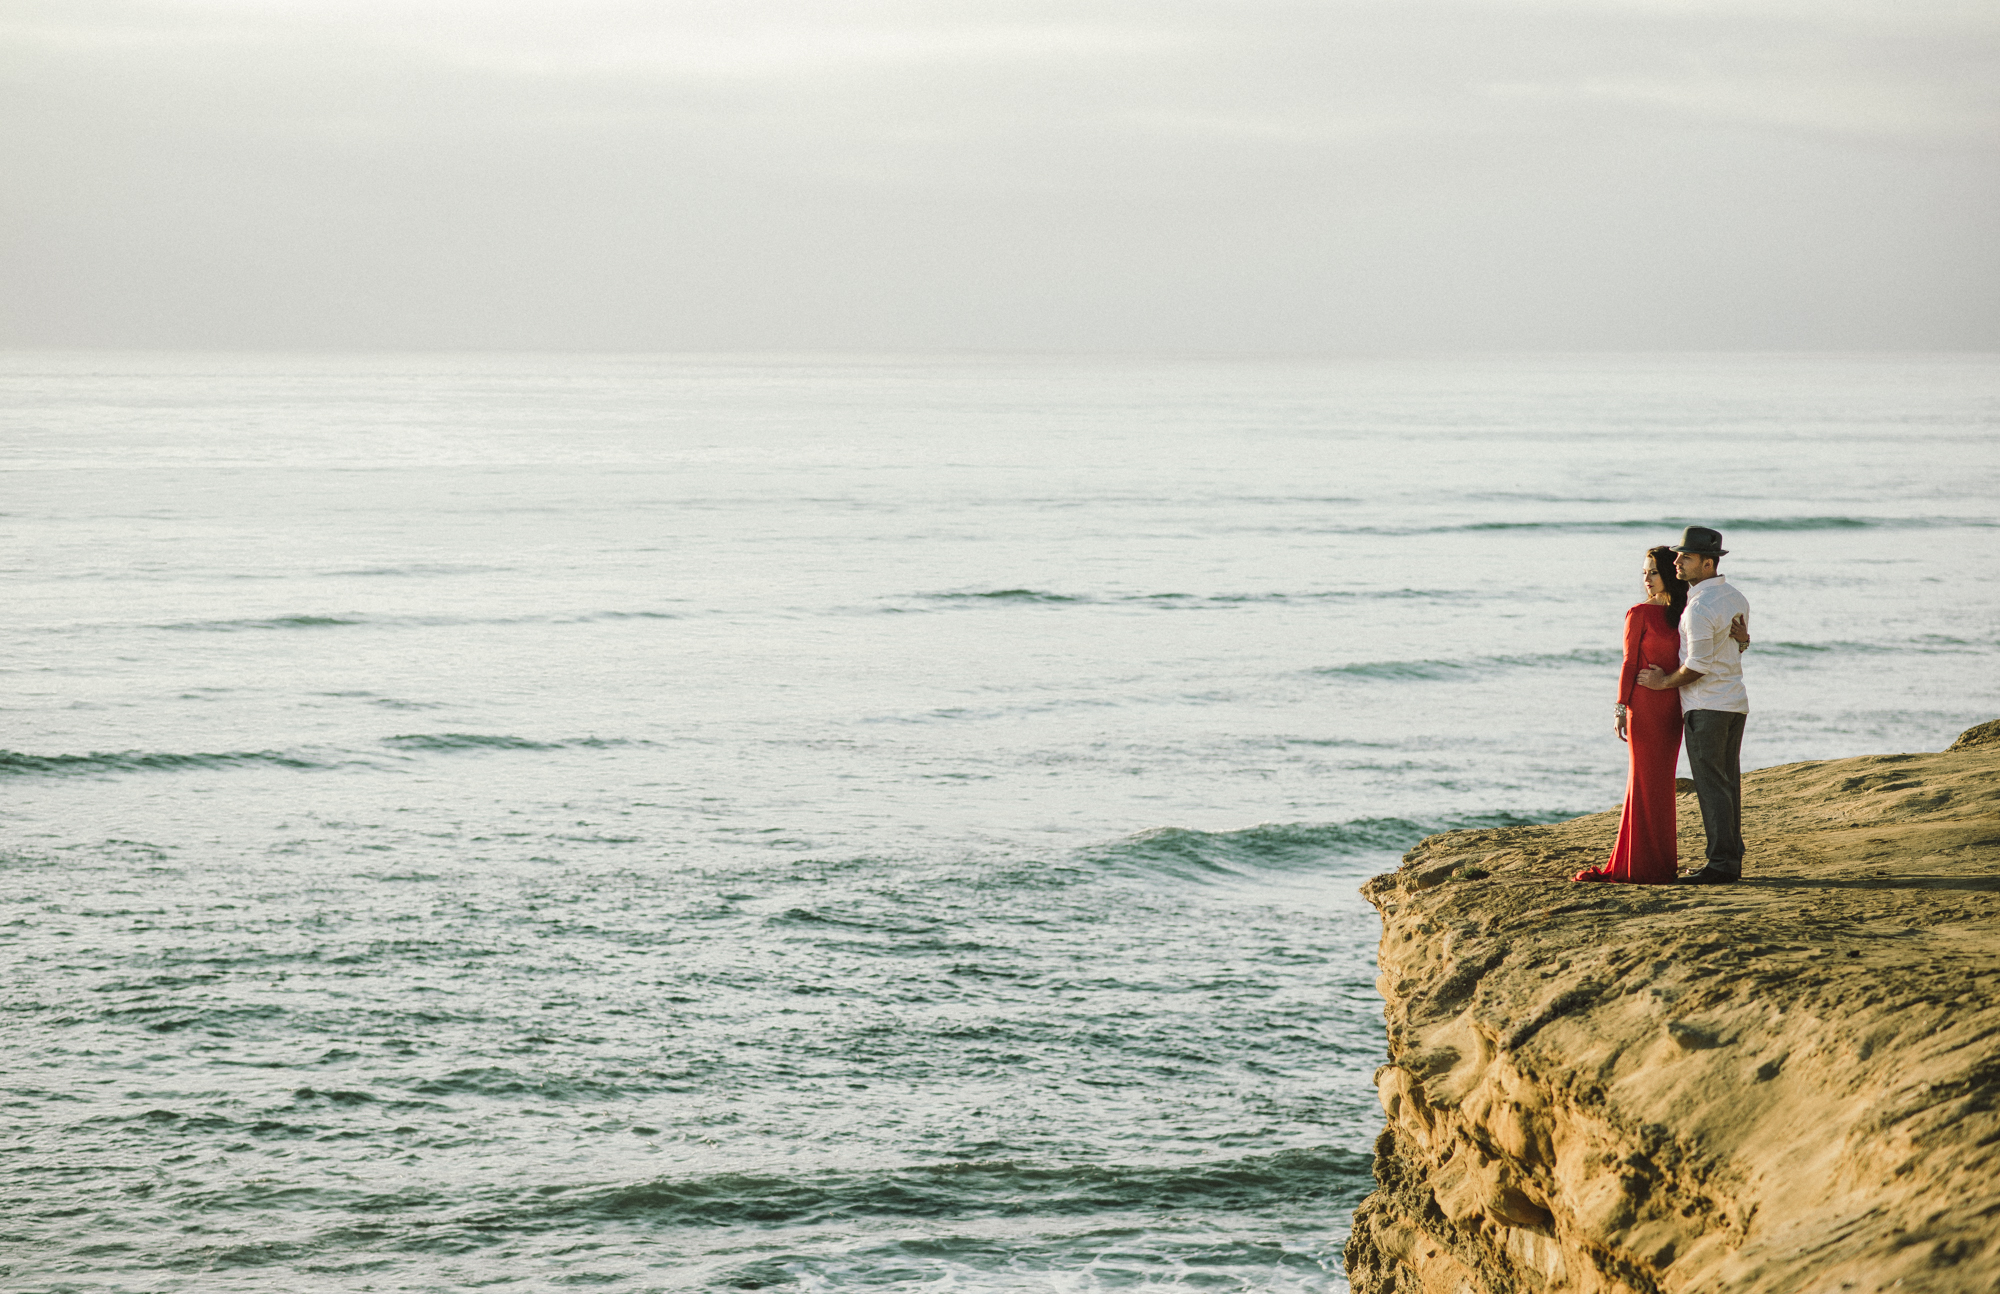 Isaiah & Taylor Photography - Los Angeles - Destination Wedding Photographers - San Diego Sunset Cliffs Beach Adventure Engagement-22.jpg